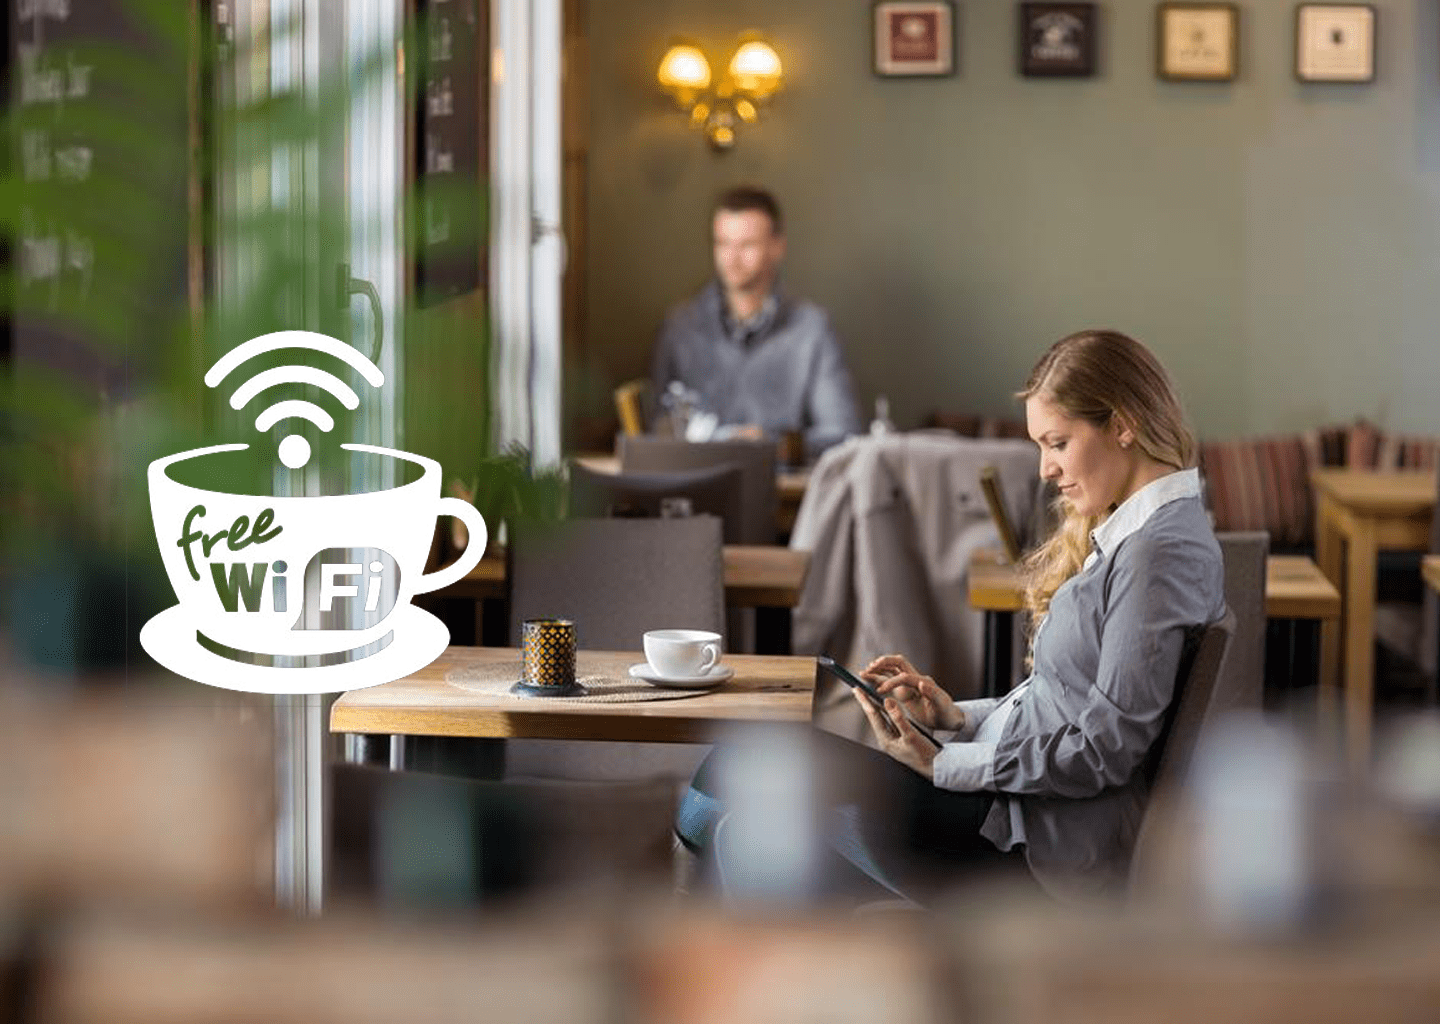 gratis cafe wifi